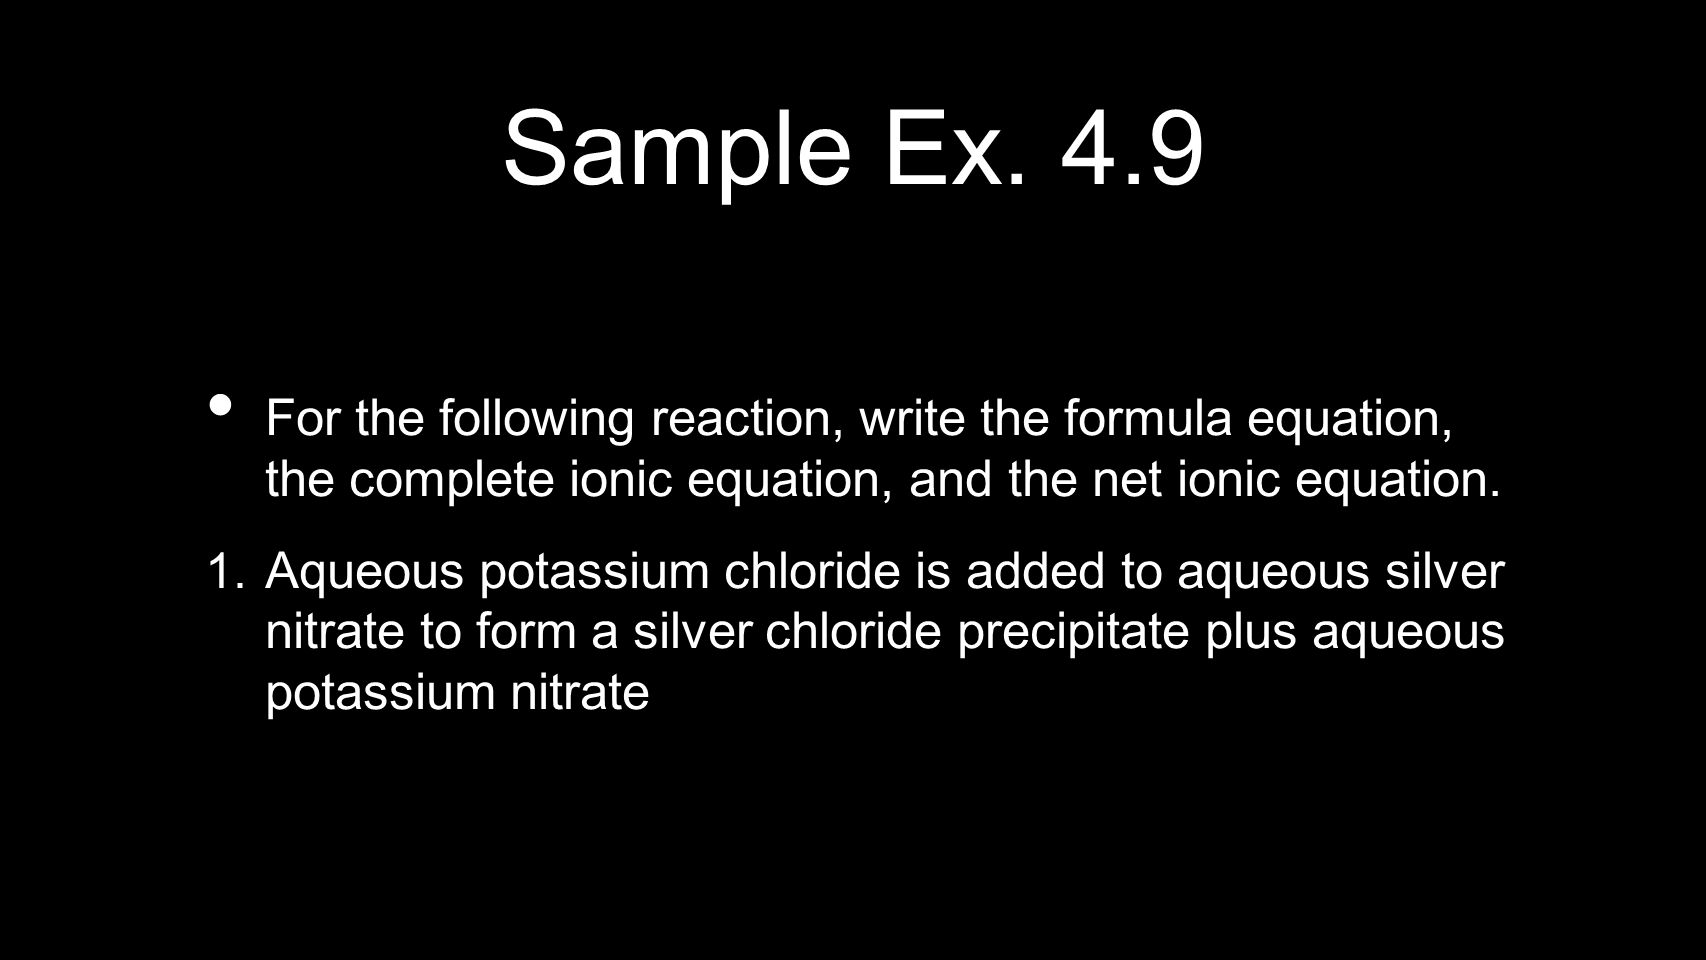 Sample Ex. 4.9 For the following reaction, write the formula equation, the complete ionic equation, and the net ionic equation.